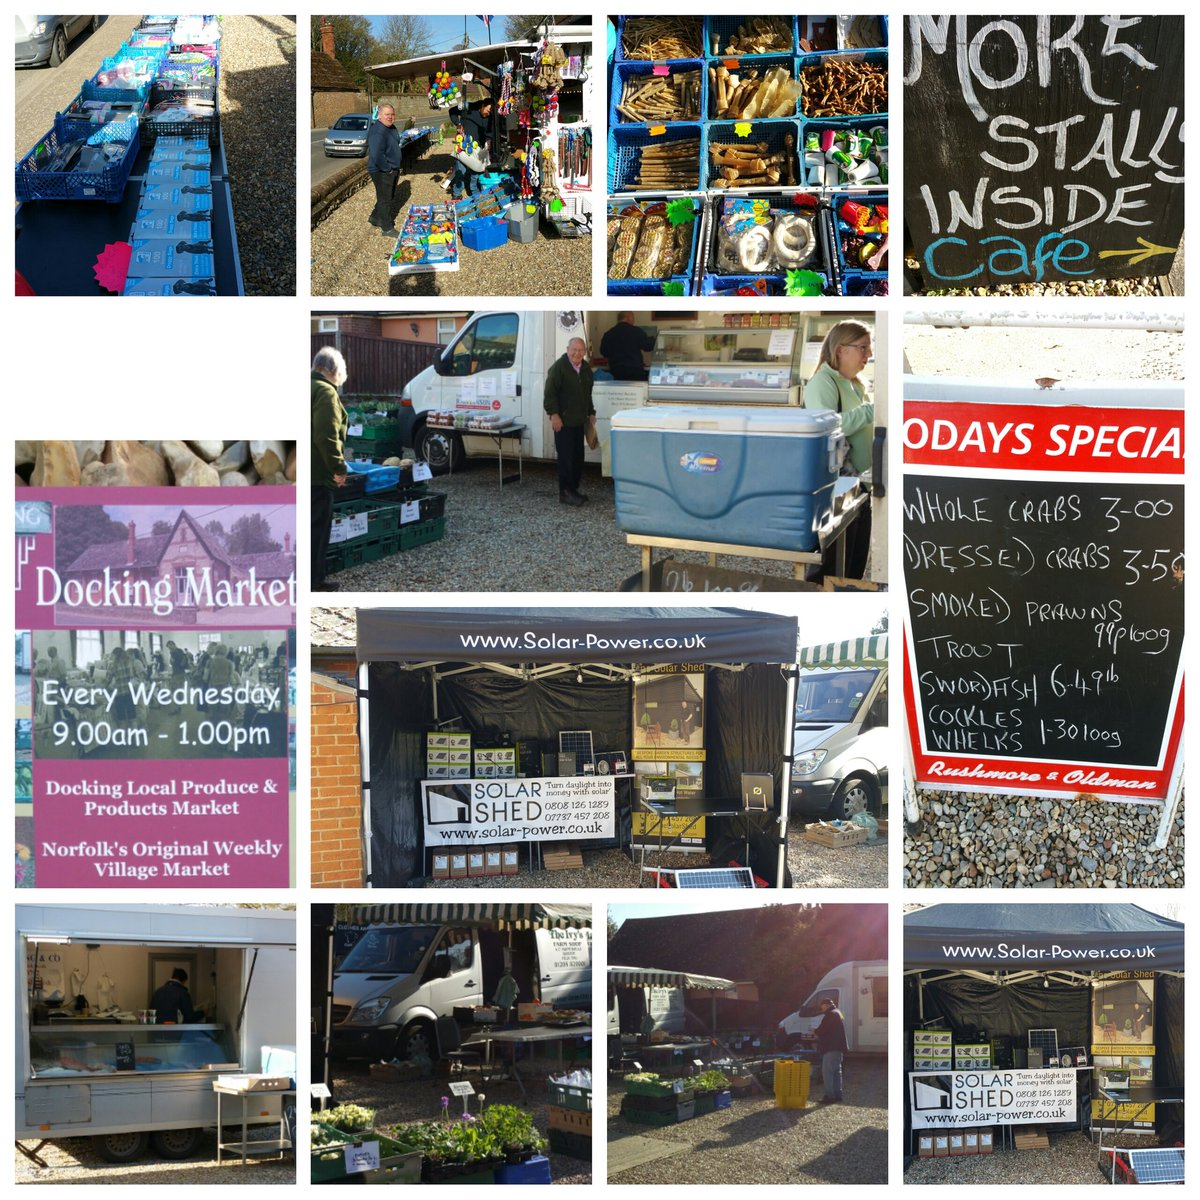 Docking Market, Ripper Hall High Street Docking Norfolk PE31 8NG | Norfolk's Original Weekly Village Market Every Wednesday | Docking Local Produce Market, Farmers Market Docking Norfolk, Fresh Food, Fresh Fish, Market, Handmade Gifts